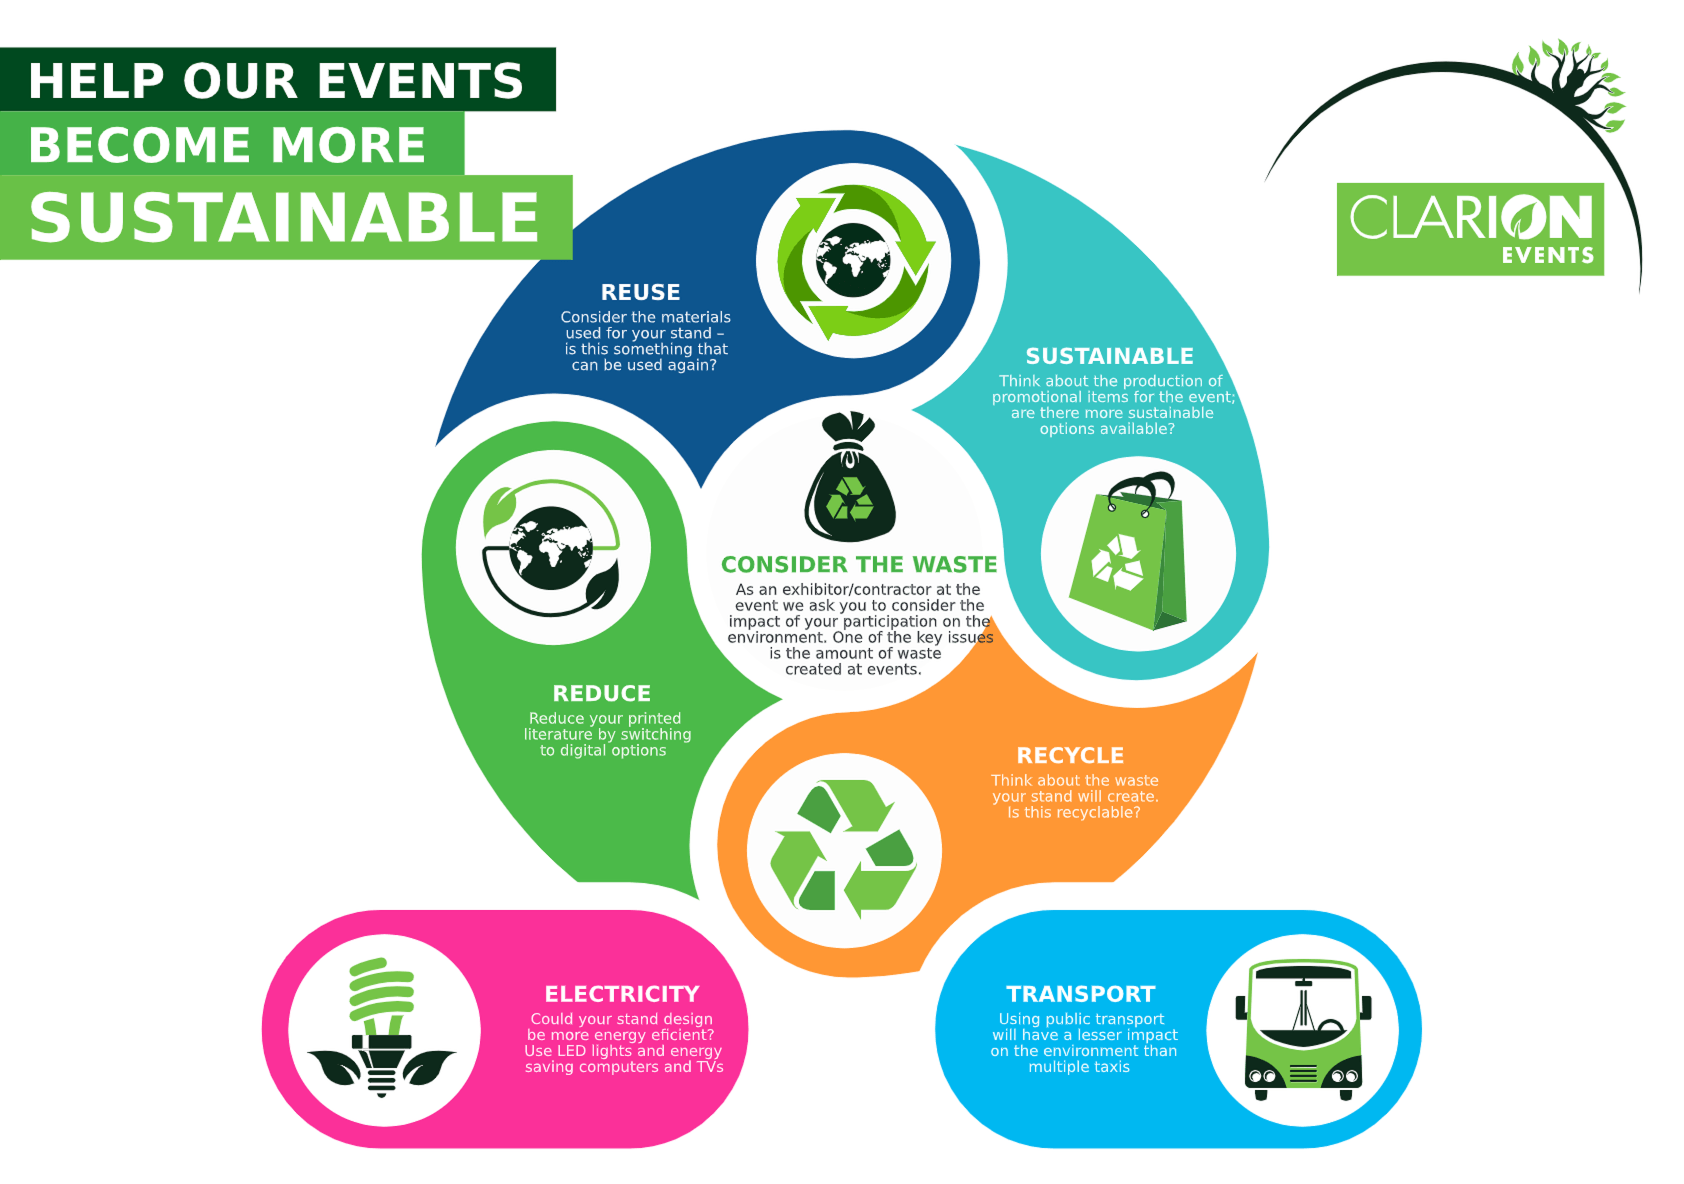 How exhibitors can become more sustainable